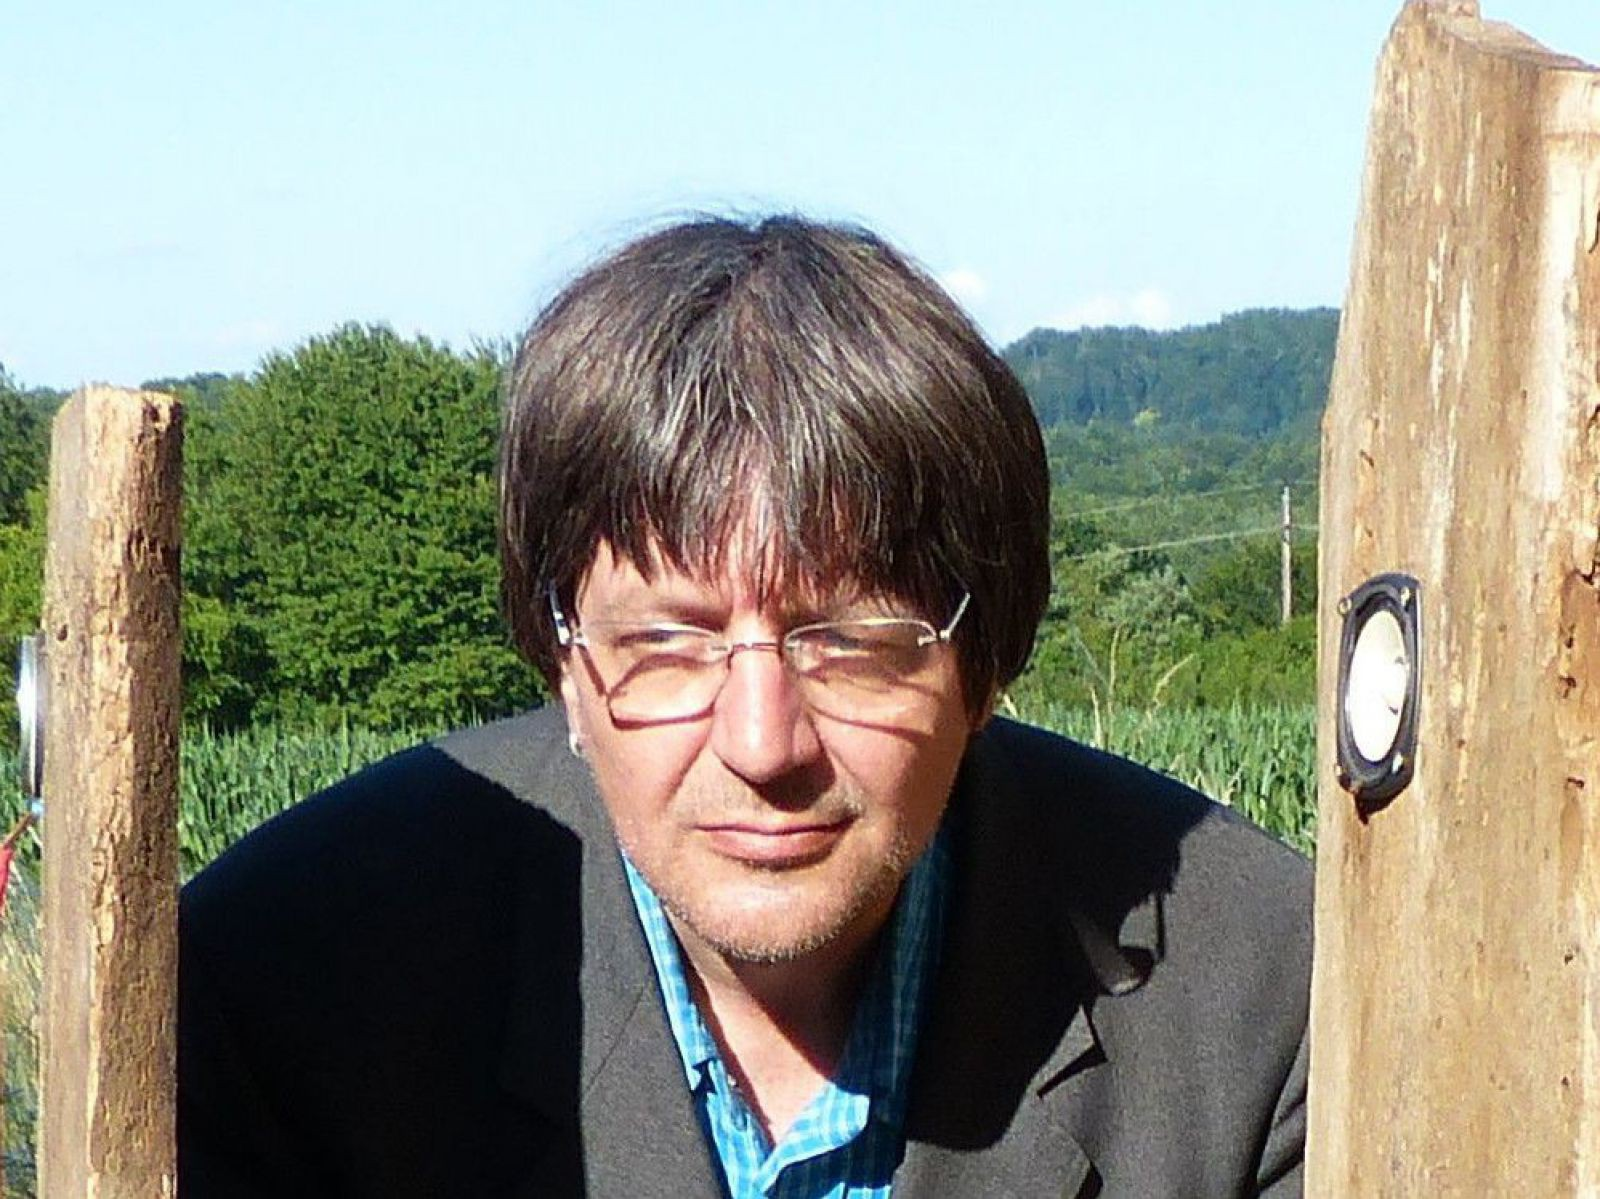 Winfried Ritsch